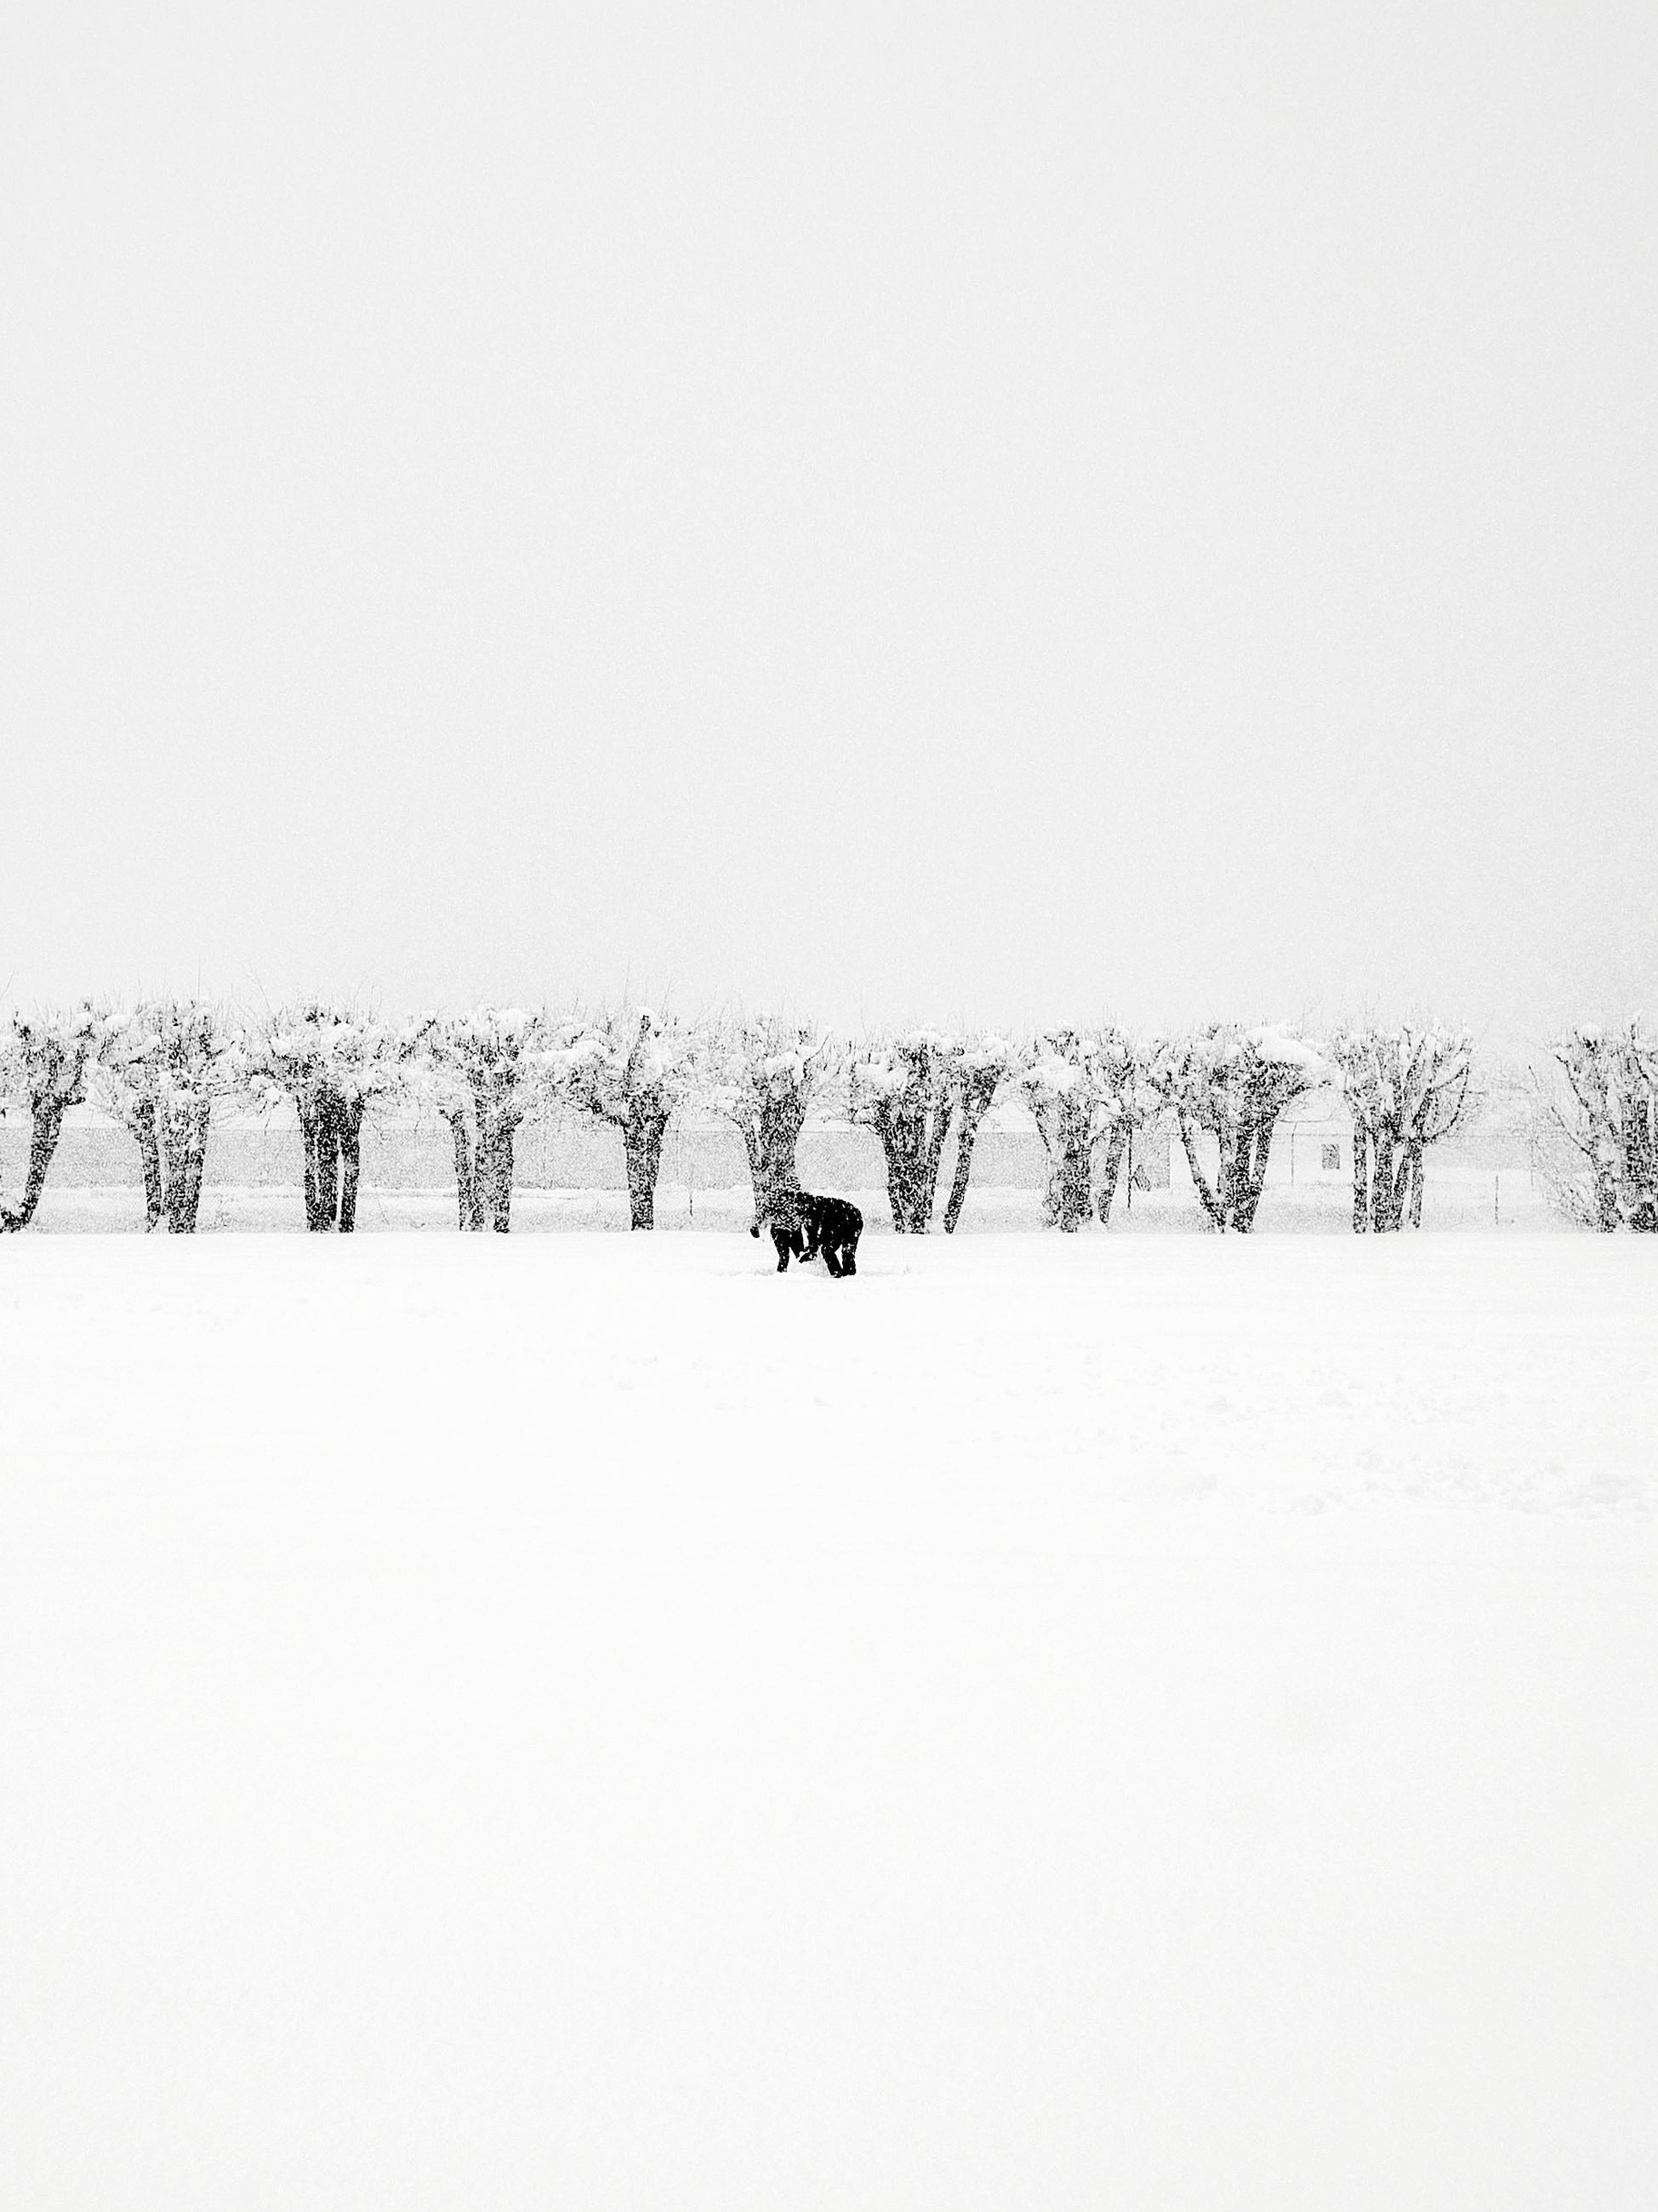 winter, snow, cold temperature, nature, animal themes, domestic animals, weather, field, beauty in nature, outdoors, tree, scenics, clear sky, tranquility, landscape, day, pets, mammal, no people, sky